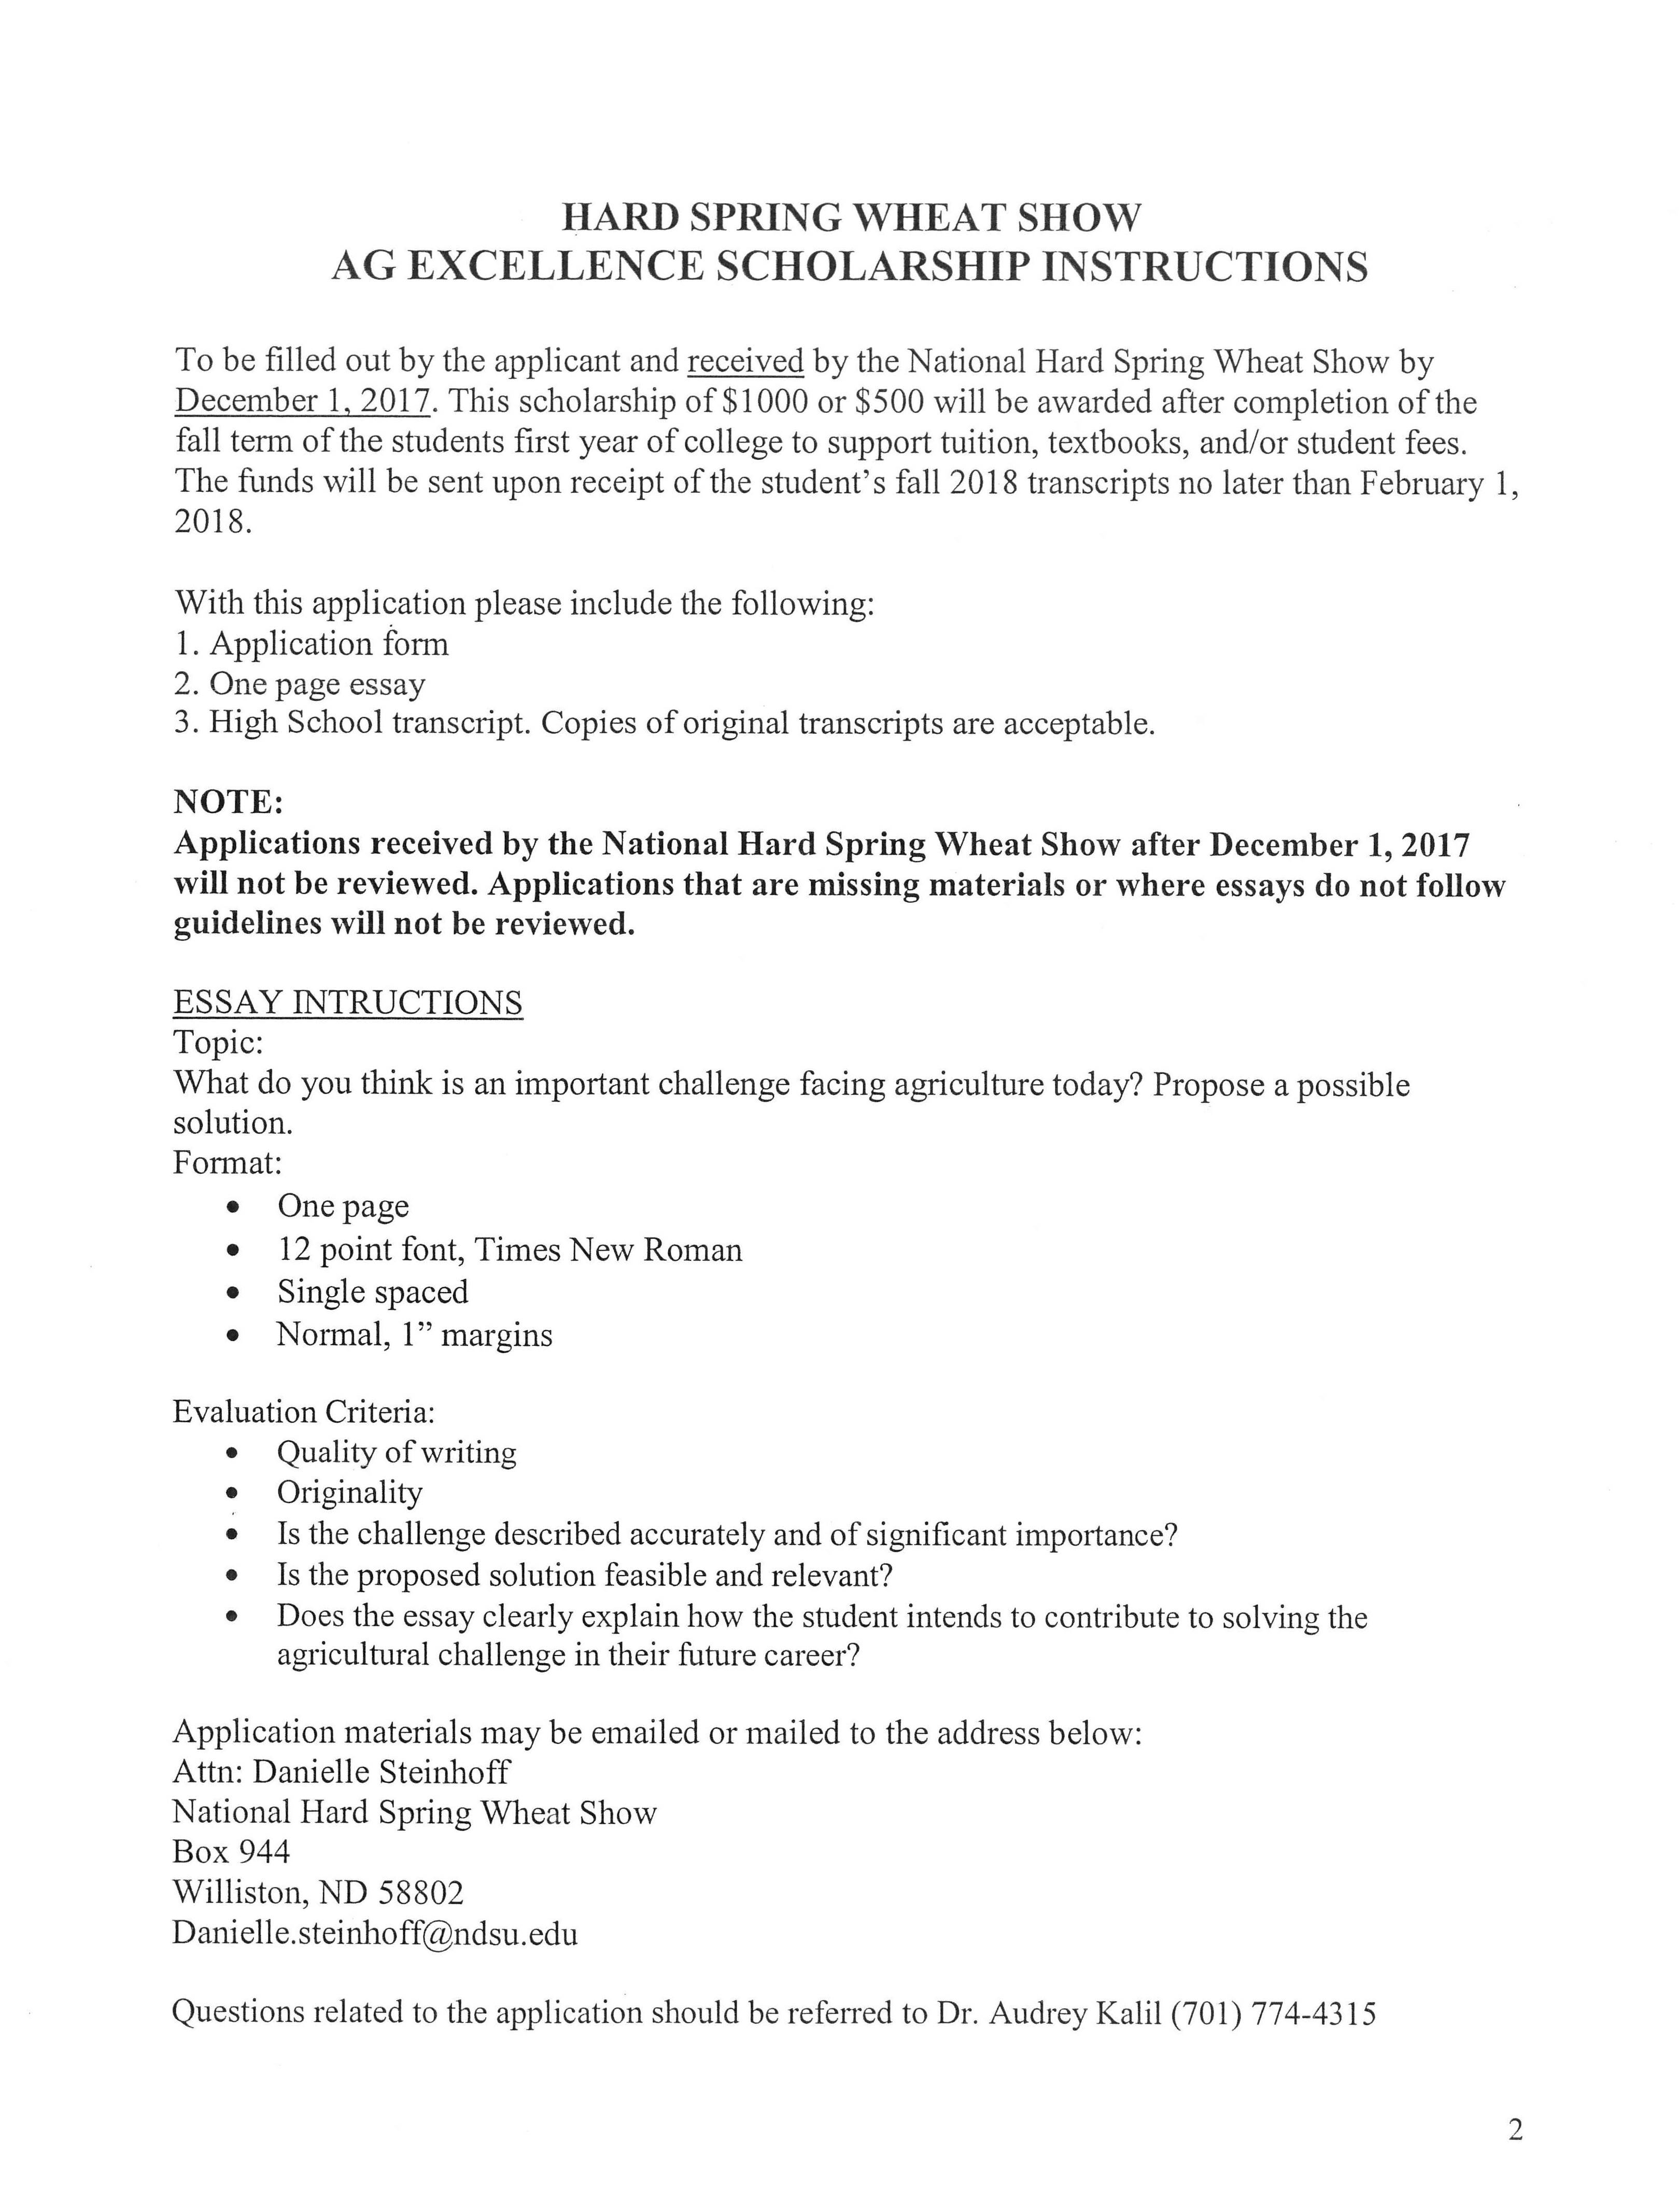 025 Scholarships With Essays Page 2 Essay Singular Without Writing For High School Juniors Class Of 2020 No 2019 Full